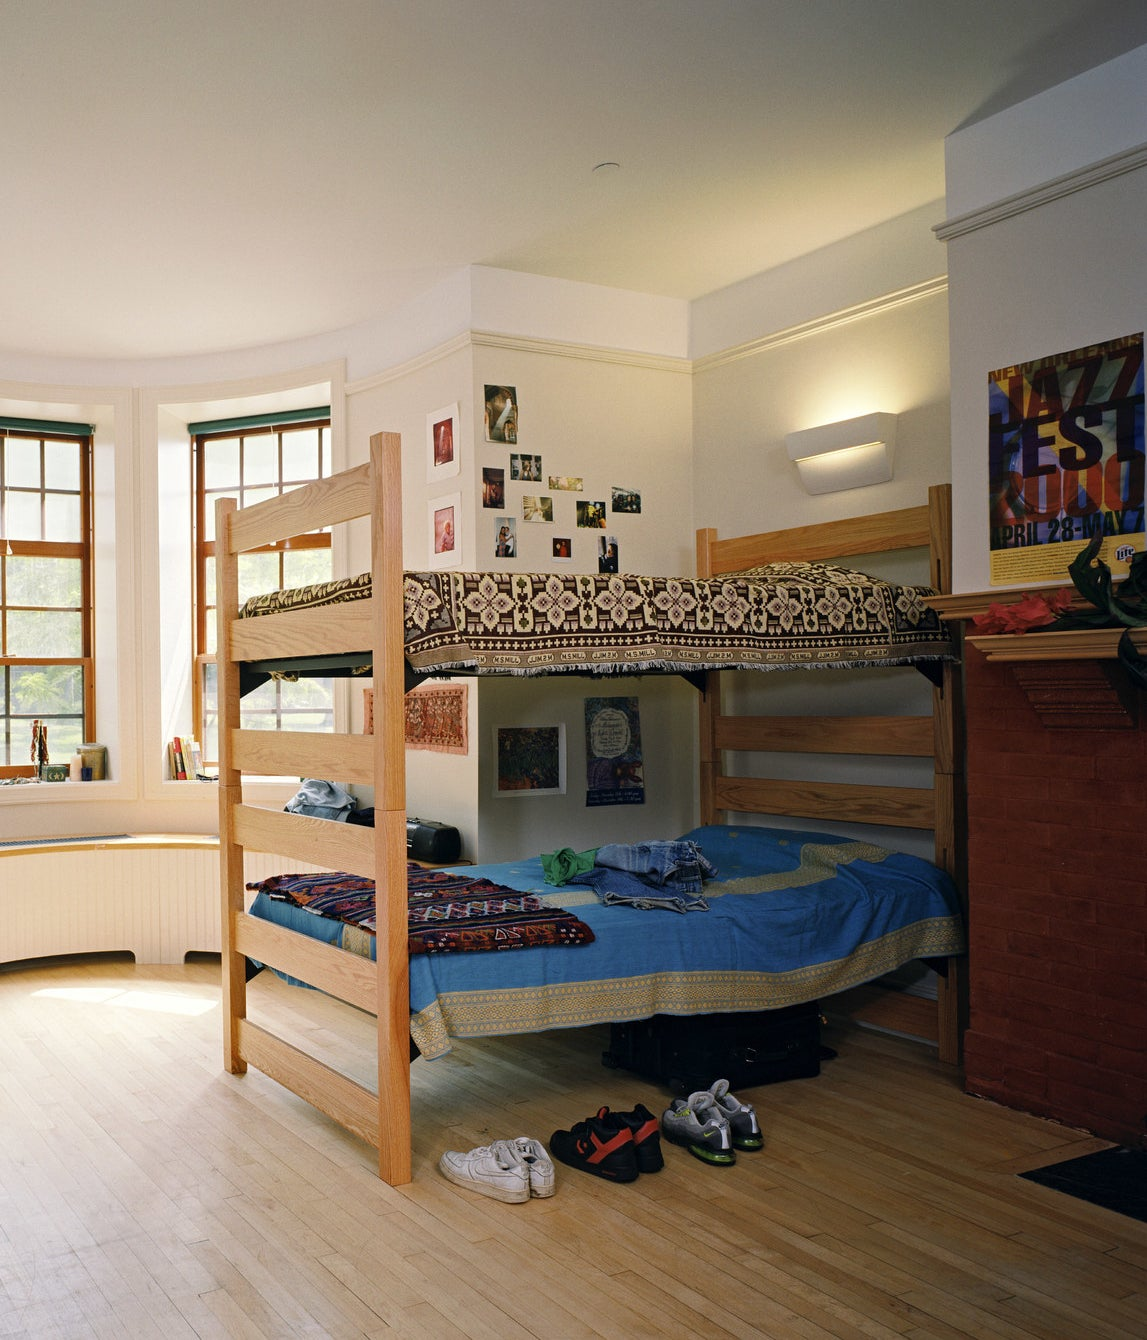 A bunk bed with clothes strewn on top